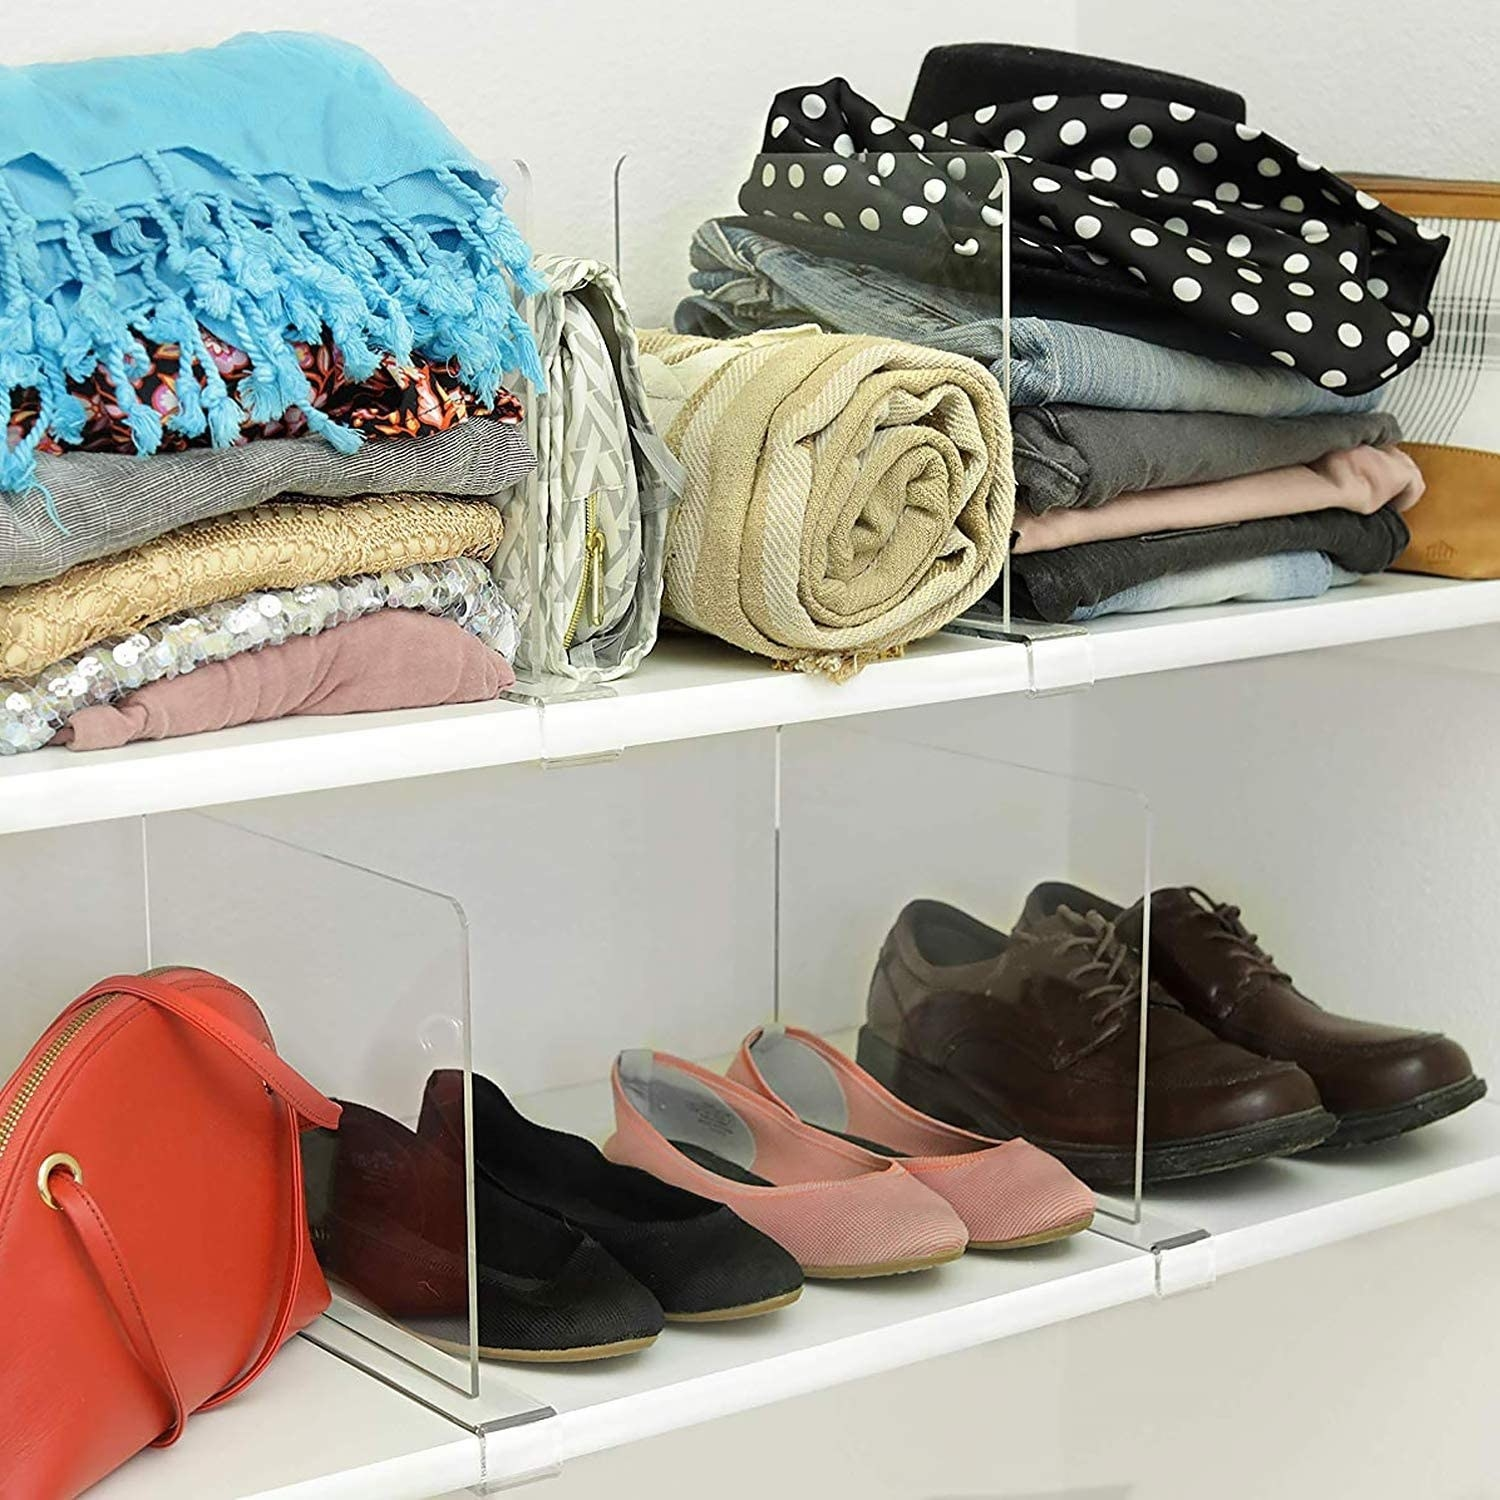 closet items separated by the dividers